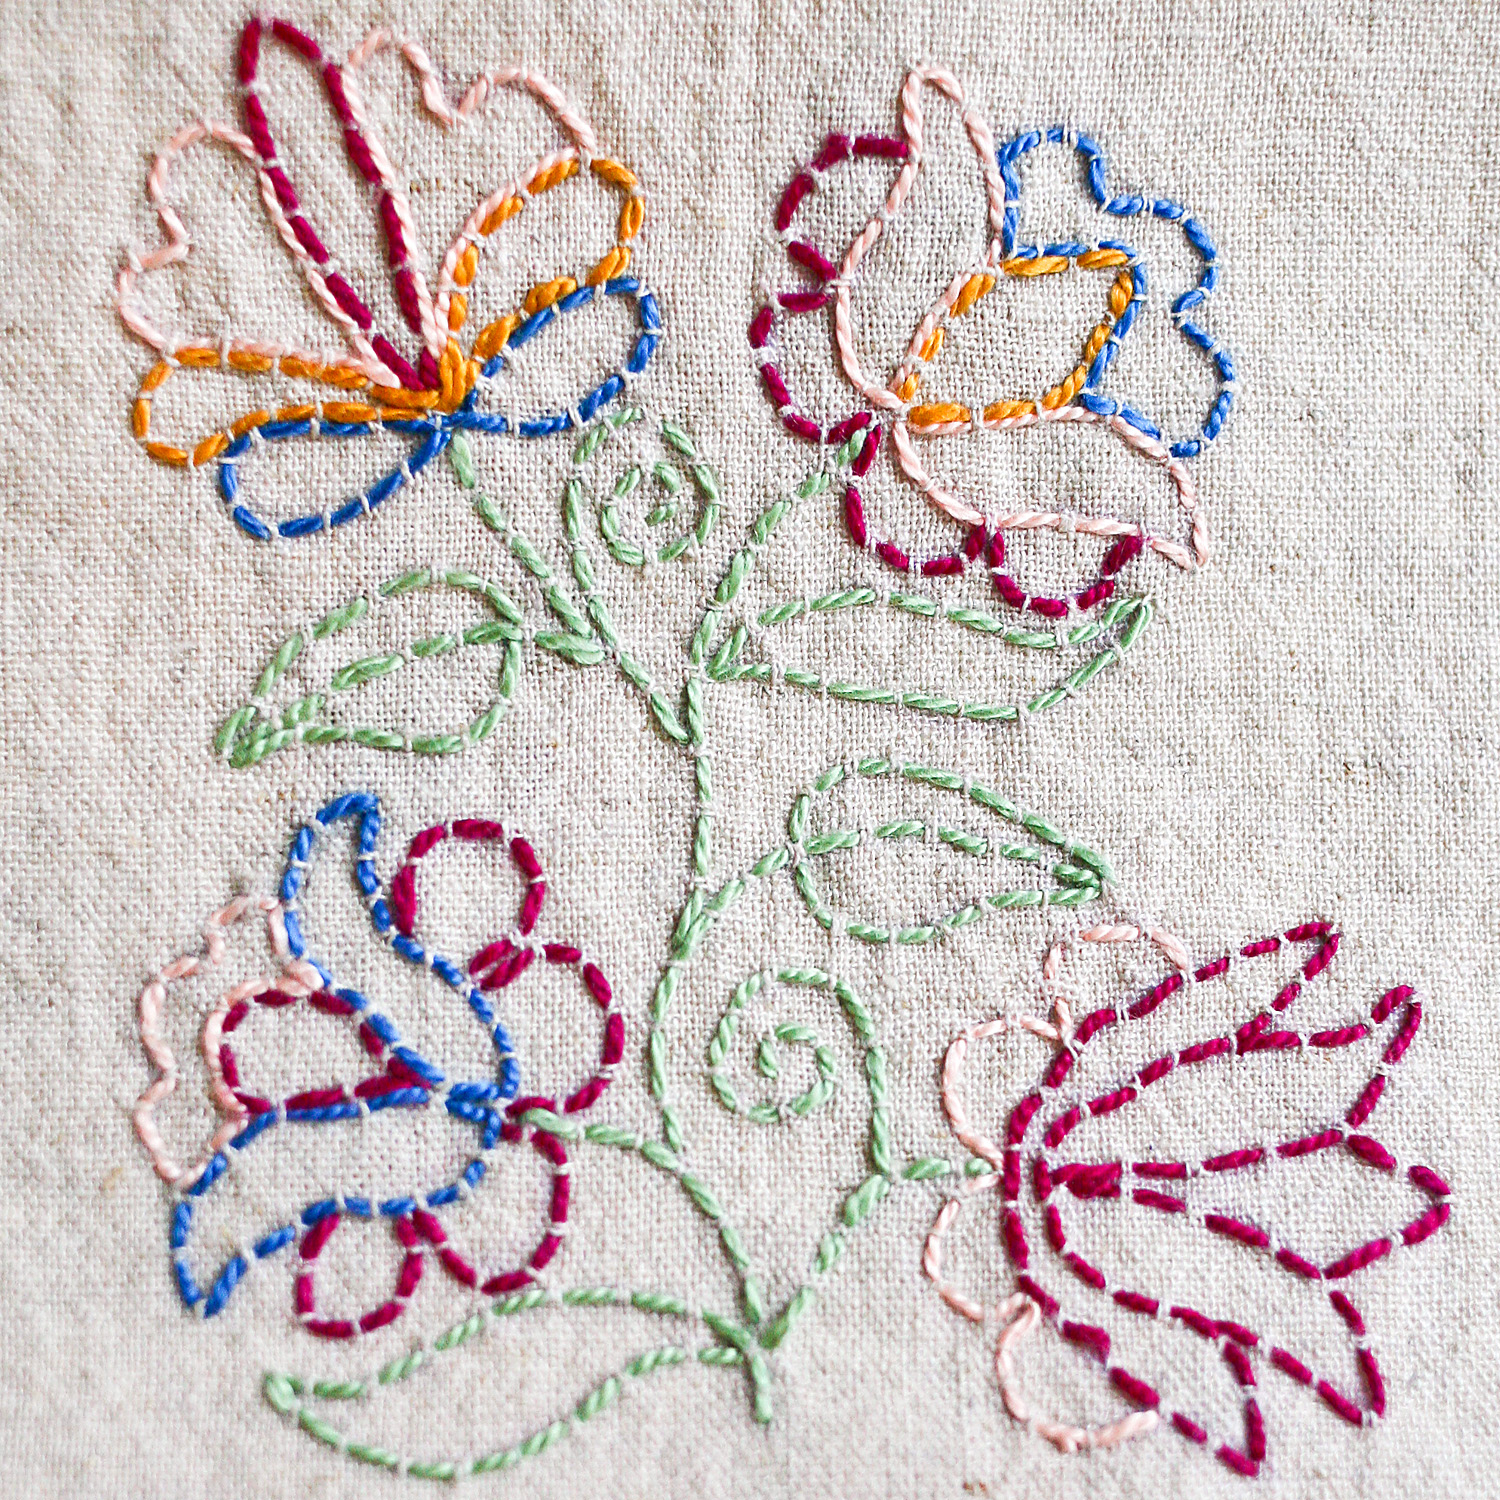 How To Make An Embroidery Pattern Outlining With Running Stitch A Tutorial Kate Rose